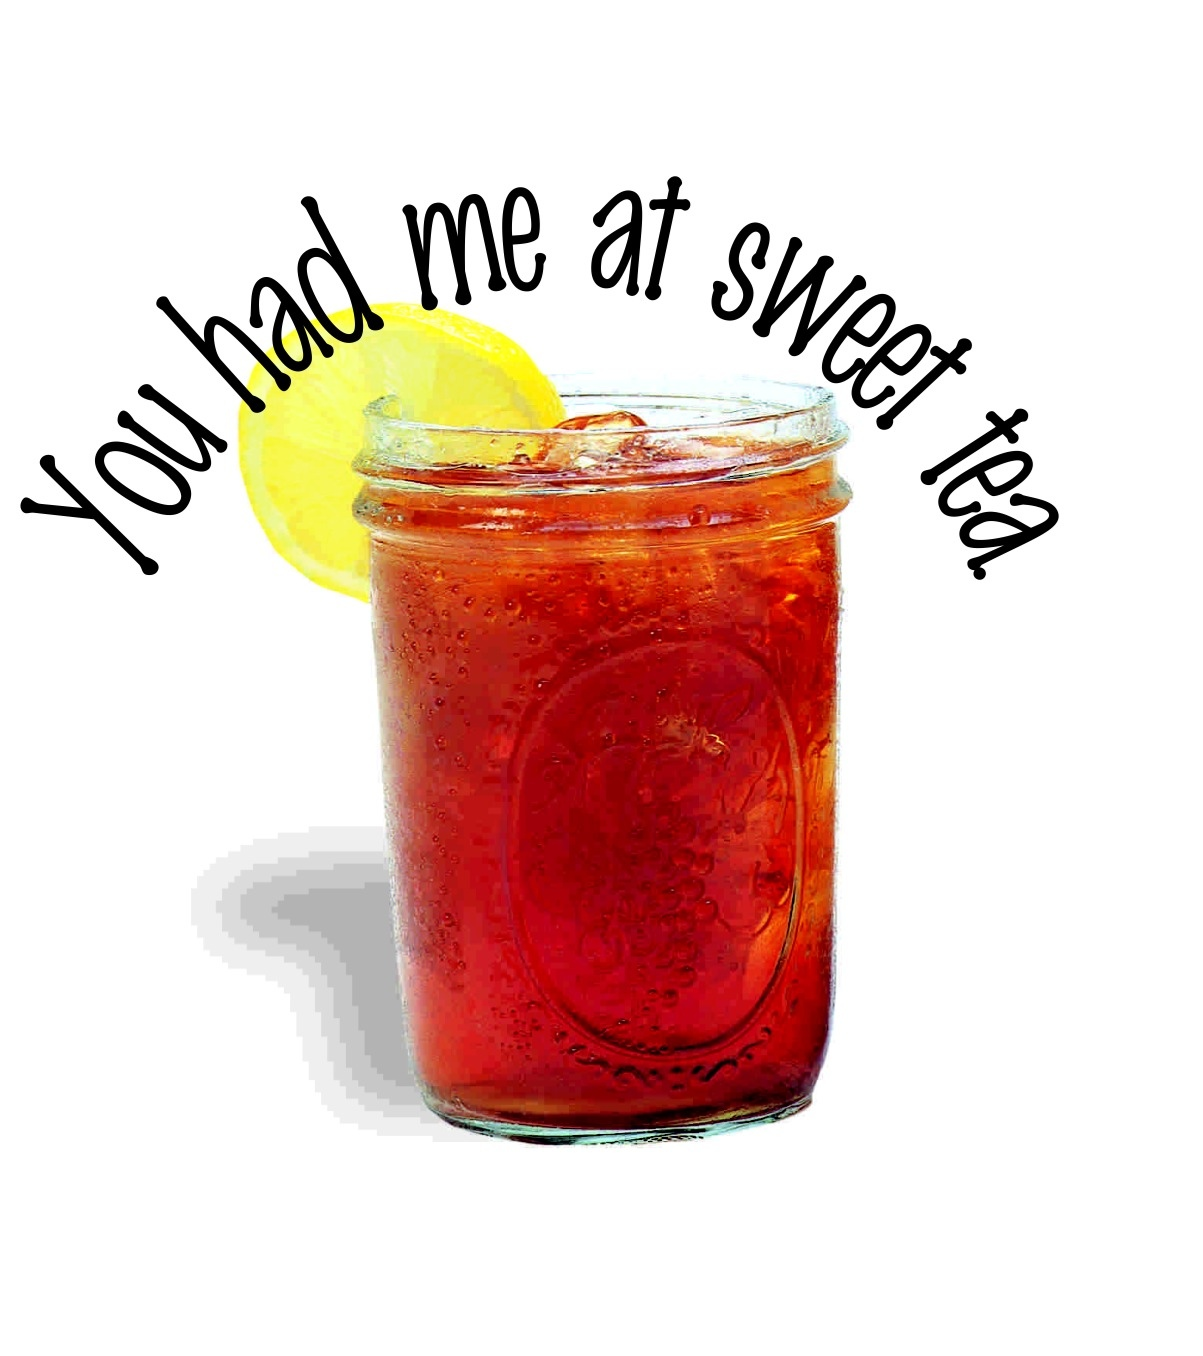 ... sweet tea sweet tea iced tea tea bags sugar lemons thesevenyearcottage